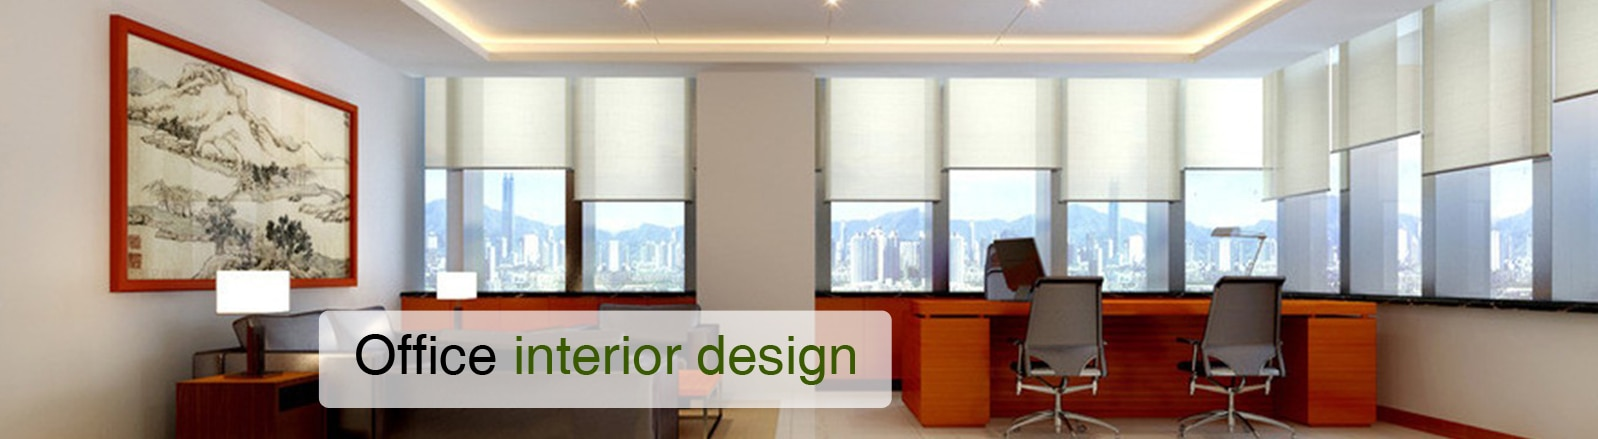 Interia is one of the best interior designers and architectural firm based in Gurgaon. Integrating the entire spectrum of interior design services as well as architectural services in Gurgaon, Delhi NCR including Noida, Ghaziabad, Faridabad and several other parts of India helped us emerge as one of the most popular name in the list of interior designers in India. We at Interia in Gurgaon are well equipped with the capabilities to conceptualize, execute and manage all our interior design projects on turnkey basis. For us, Interior Design begins with conceptualization and ends only after its successful execution. For More Information www.theinteria.com Modern Office Designer in Gurgaon Corporate Interior Designing in Gurgaon Commercial Interior Designer in Gurgaon Interior Designer in Gurgaon Best Home & Office interior designer in gurgaon Complete Corporate Interior Design Company in Delhi Ncr Interior designers, decorators, design companies in Gurgaon Corporate Interior Designers & Decorators in Delhi Ncr Interior Designers in Gurgaon